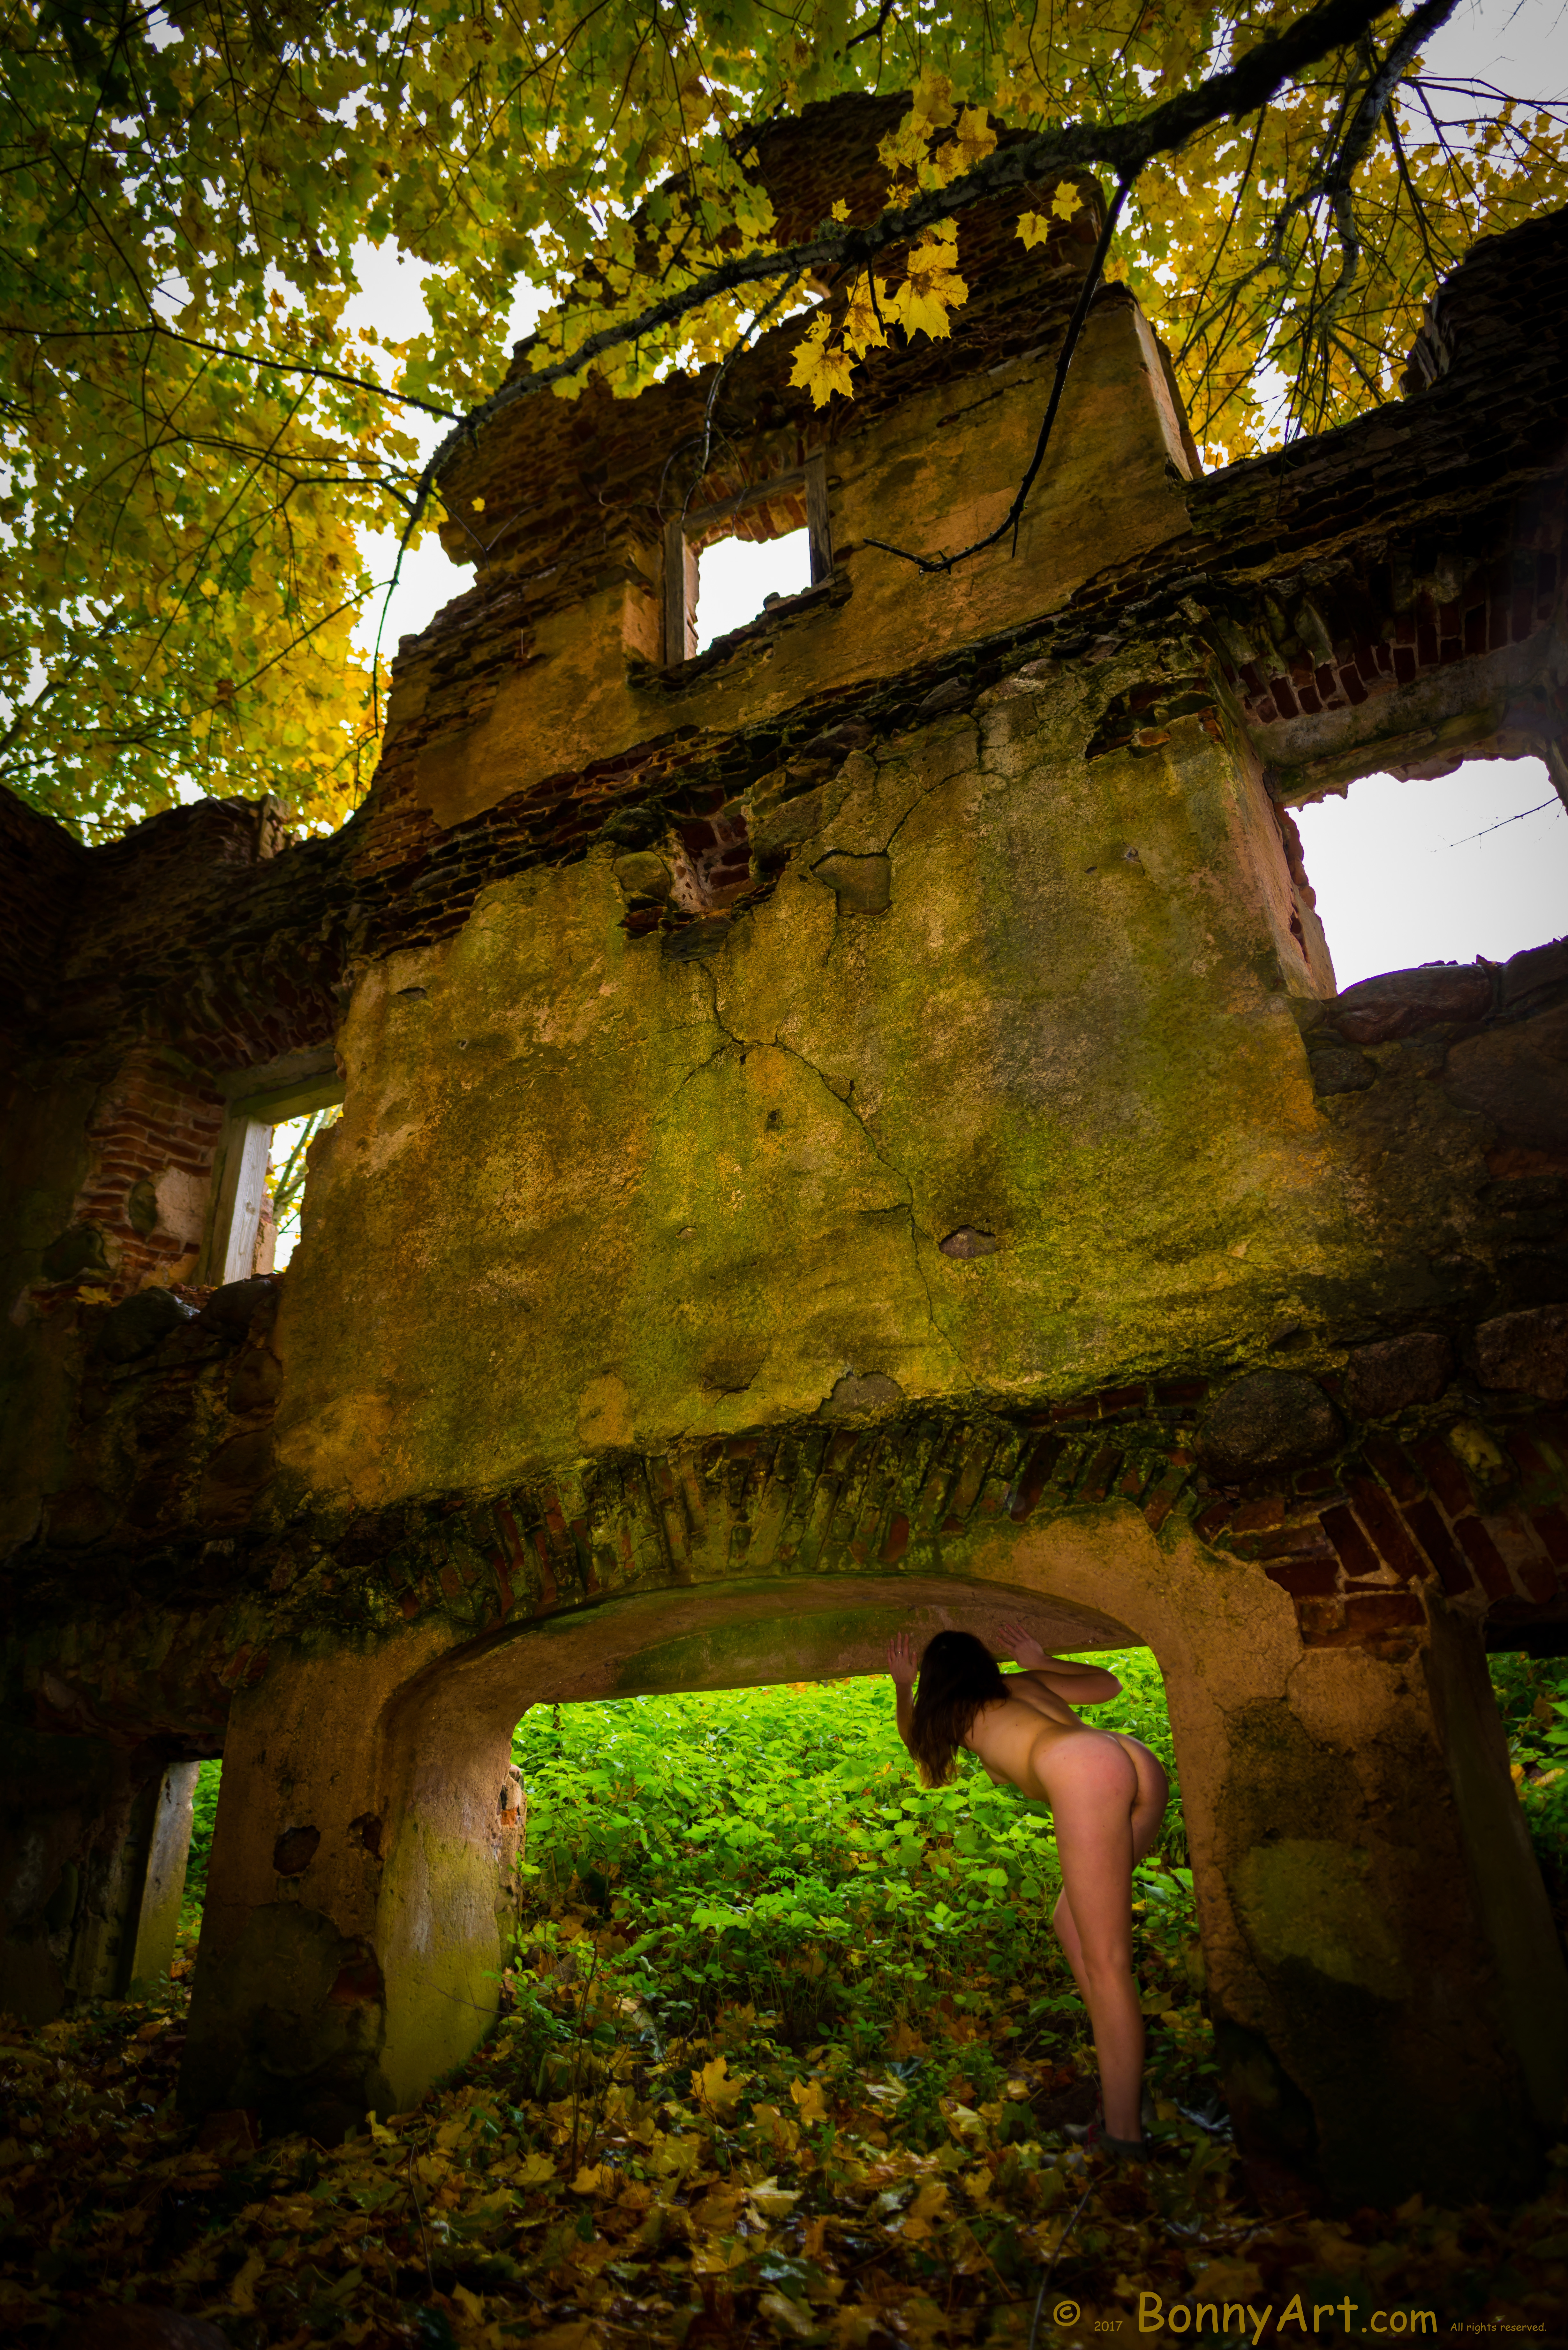 Naked Woman Bending Over at the Ruins